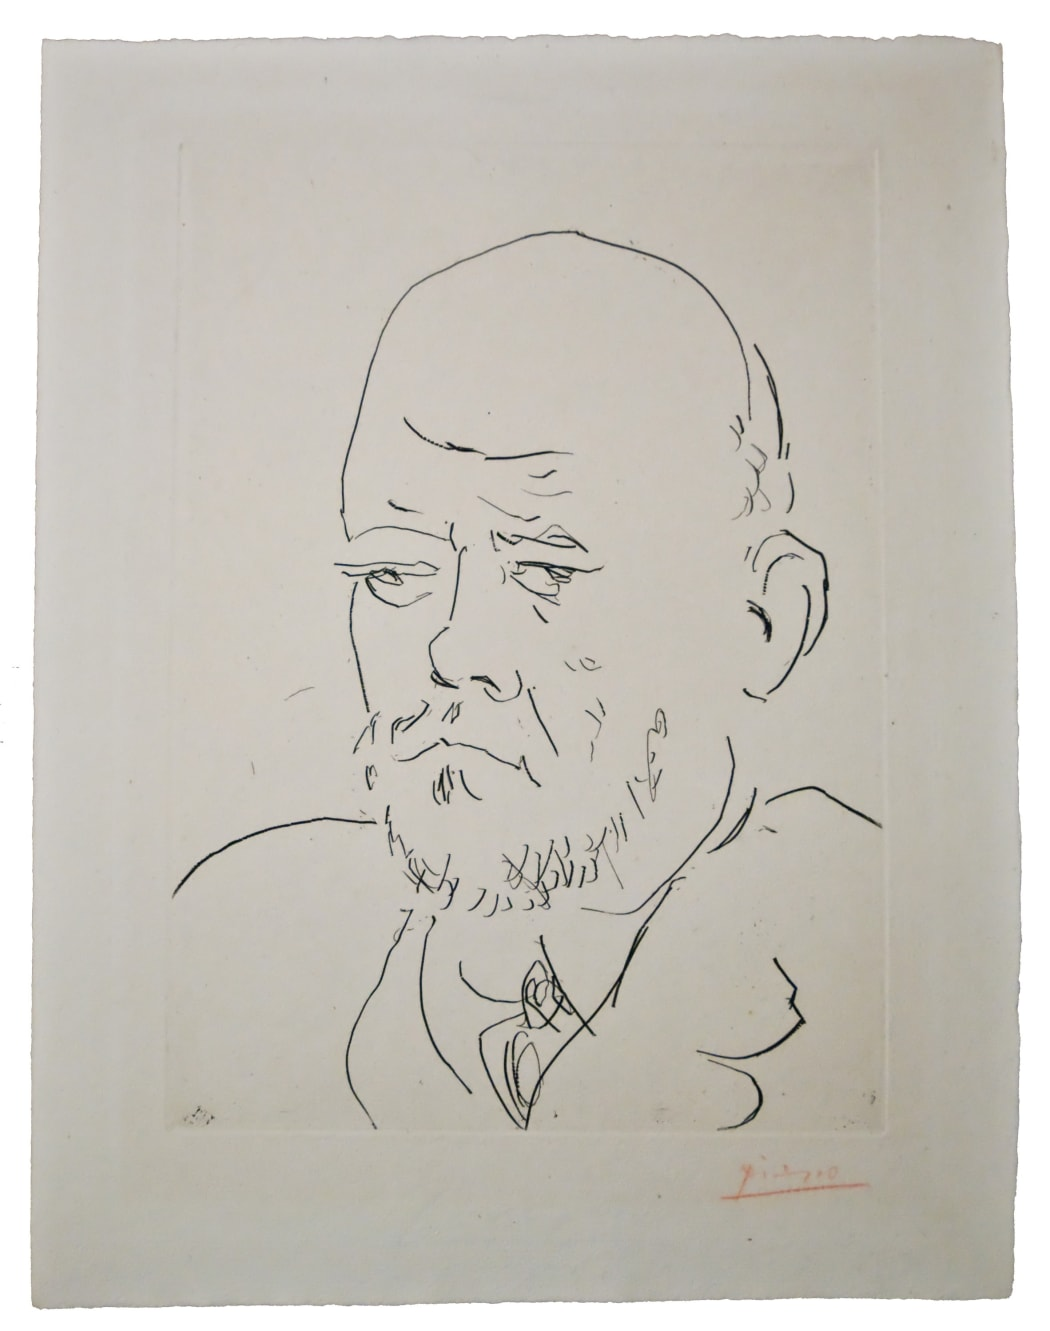 Portrait de Vollard IV (B233), 1933, etching, 17 1/2 x 12 3/8 inches